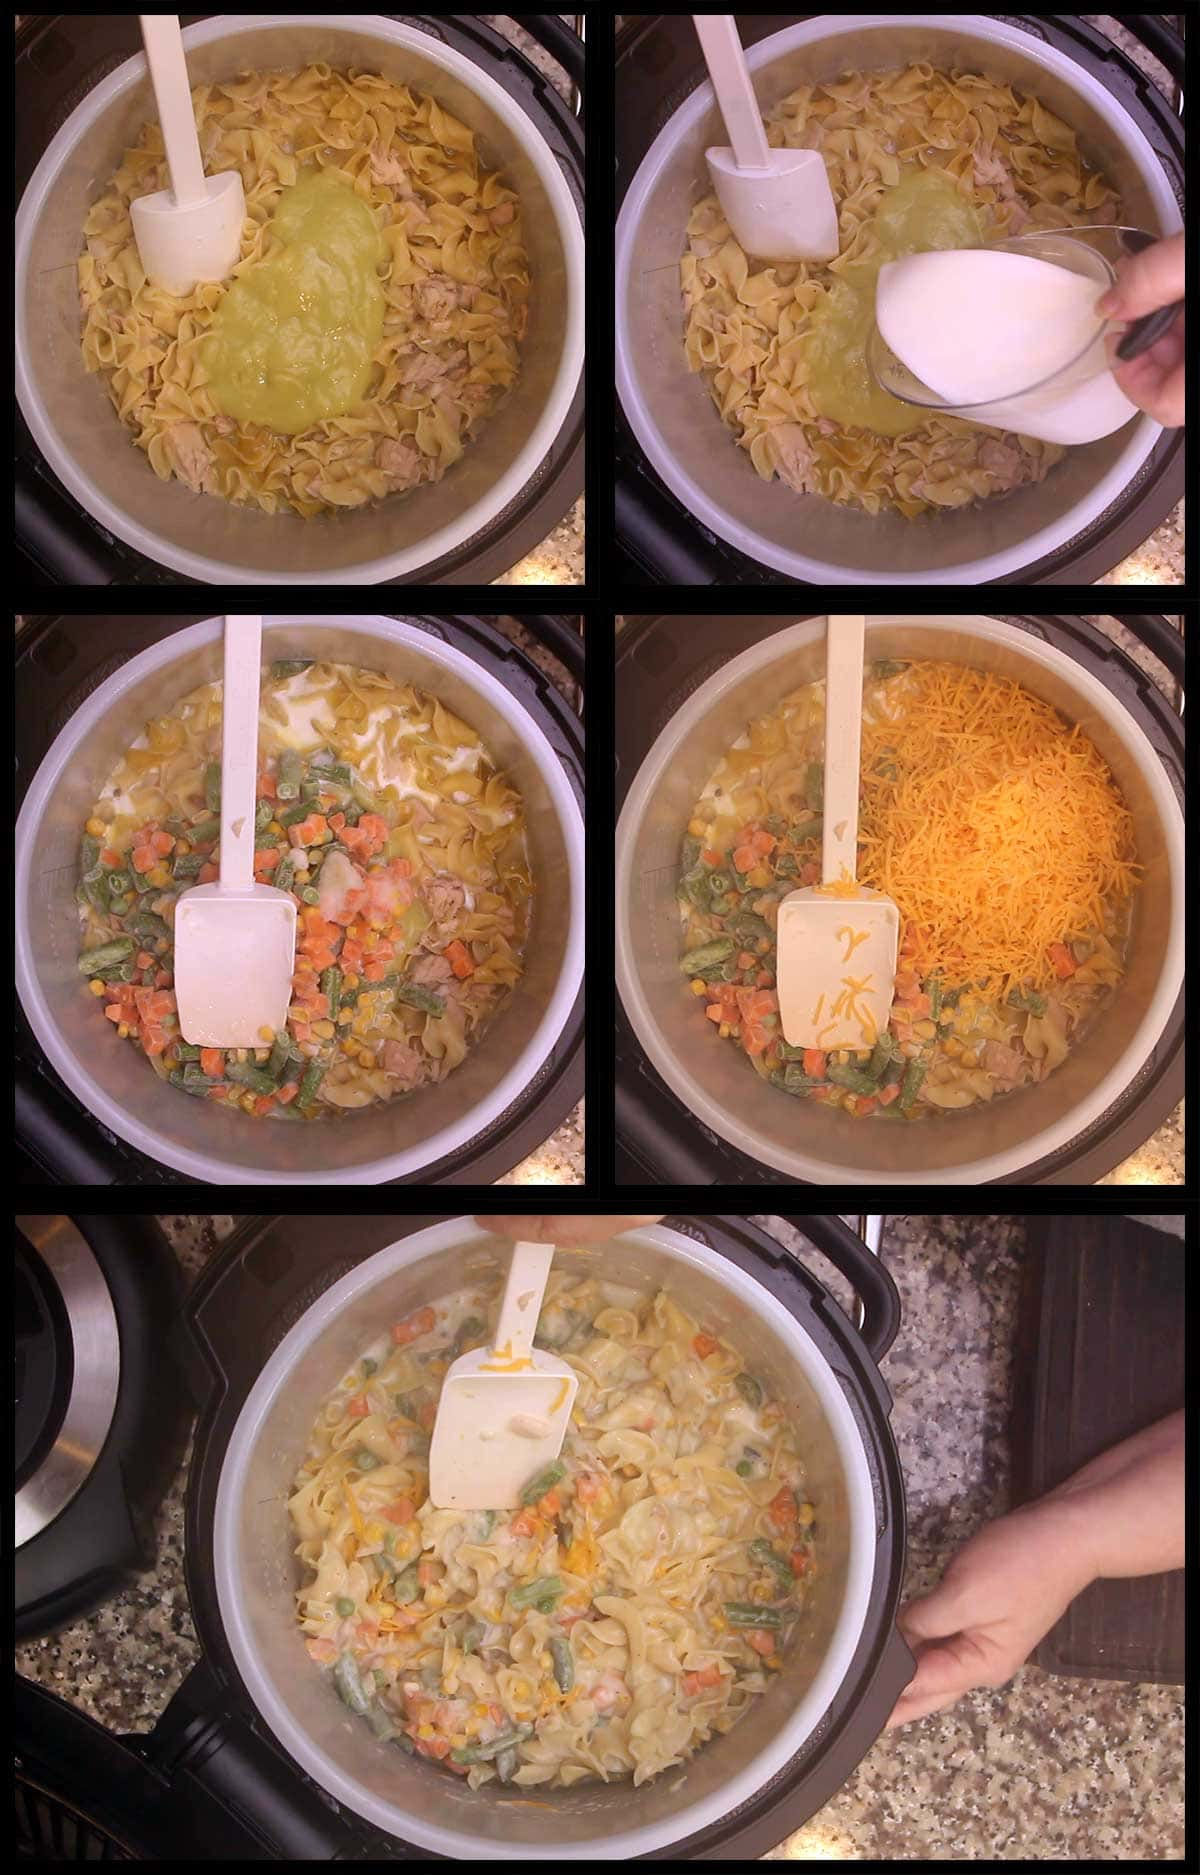 adding, soup, cream, cheese, veggies to casserole and stirring